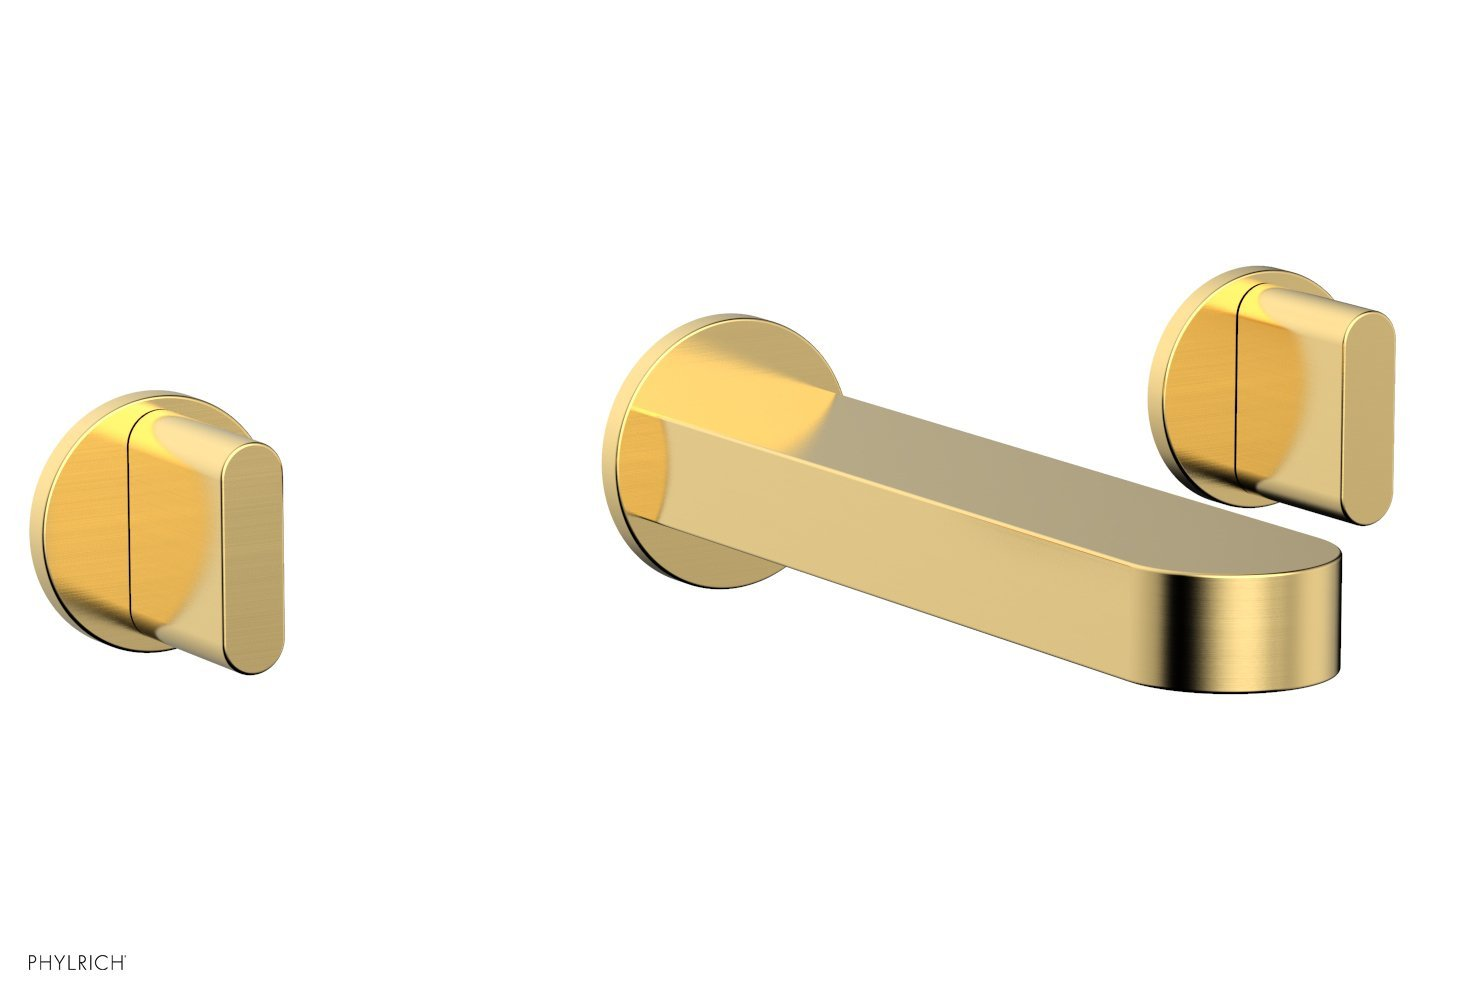 Phylrich 183-11-024 ROND Wall Lavatory Set - Blade Handles - Satin Gold